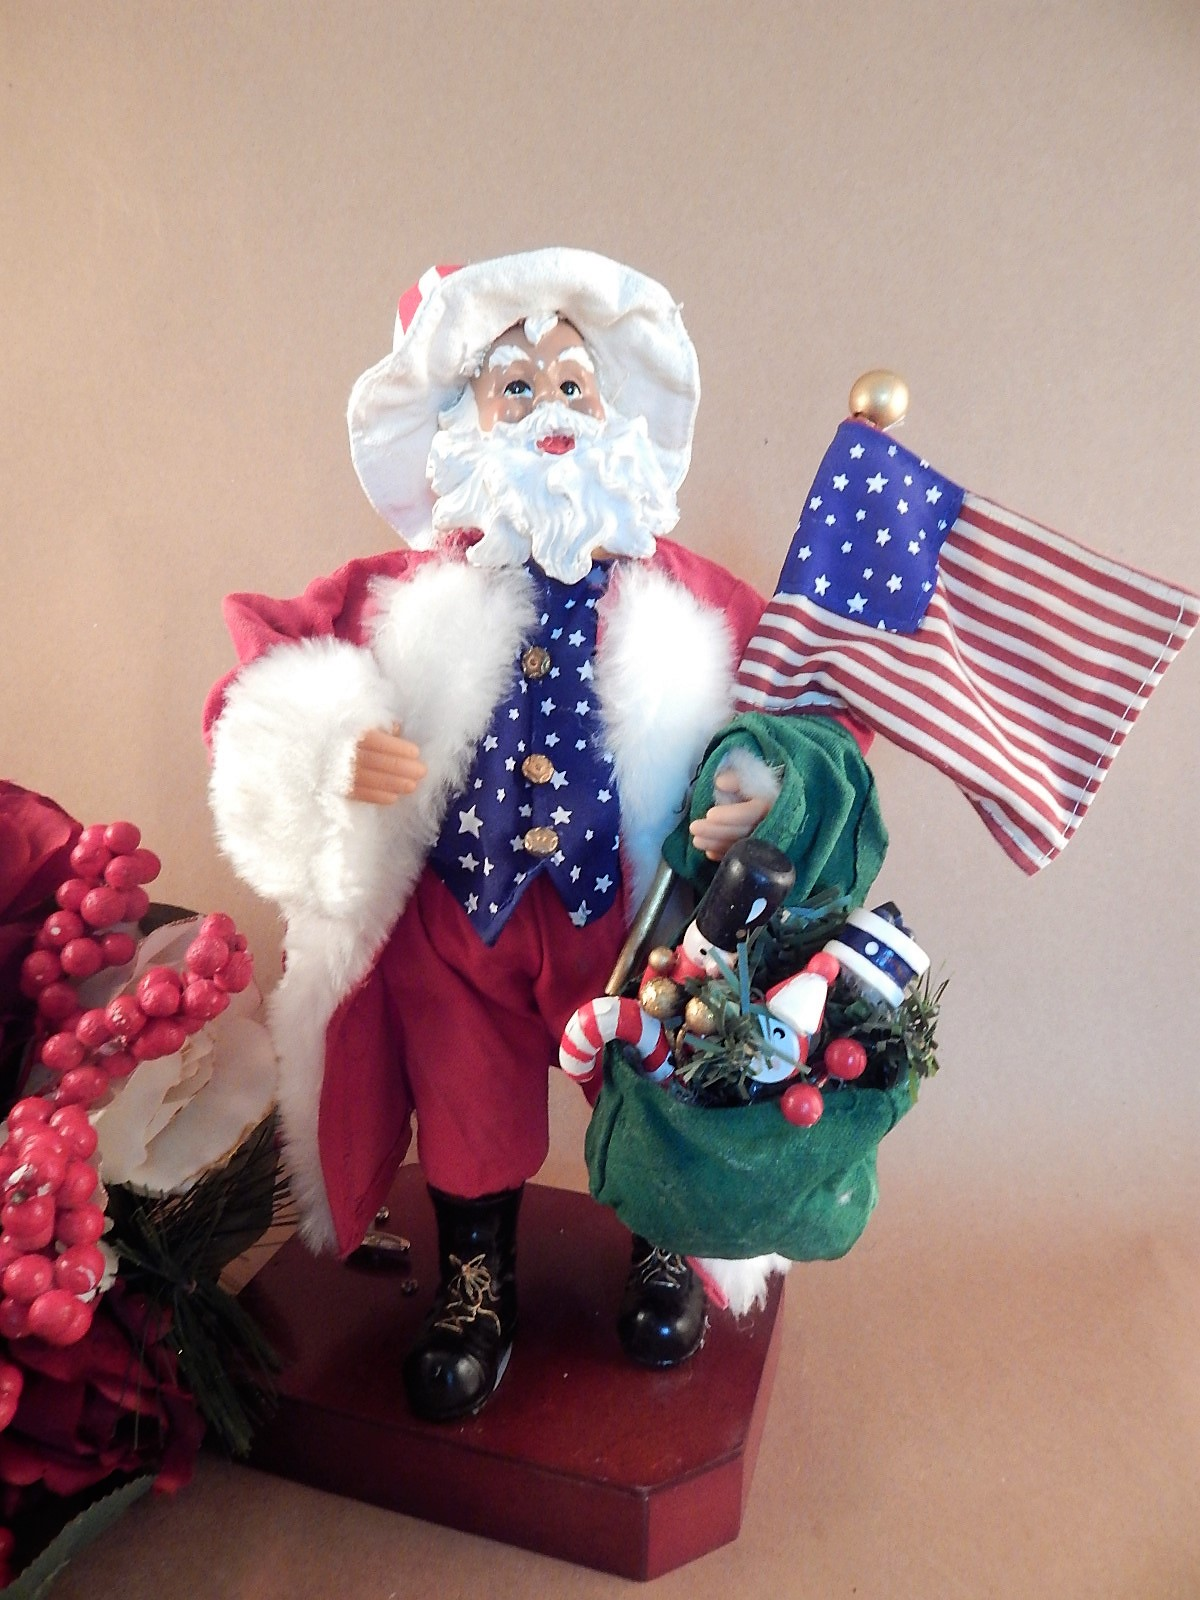 Santa Claus Figurine Music Box Plays Stars and Stripes Forever Patriotic USA Americana Vintage 1990s Collectible Christmas Decoration